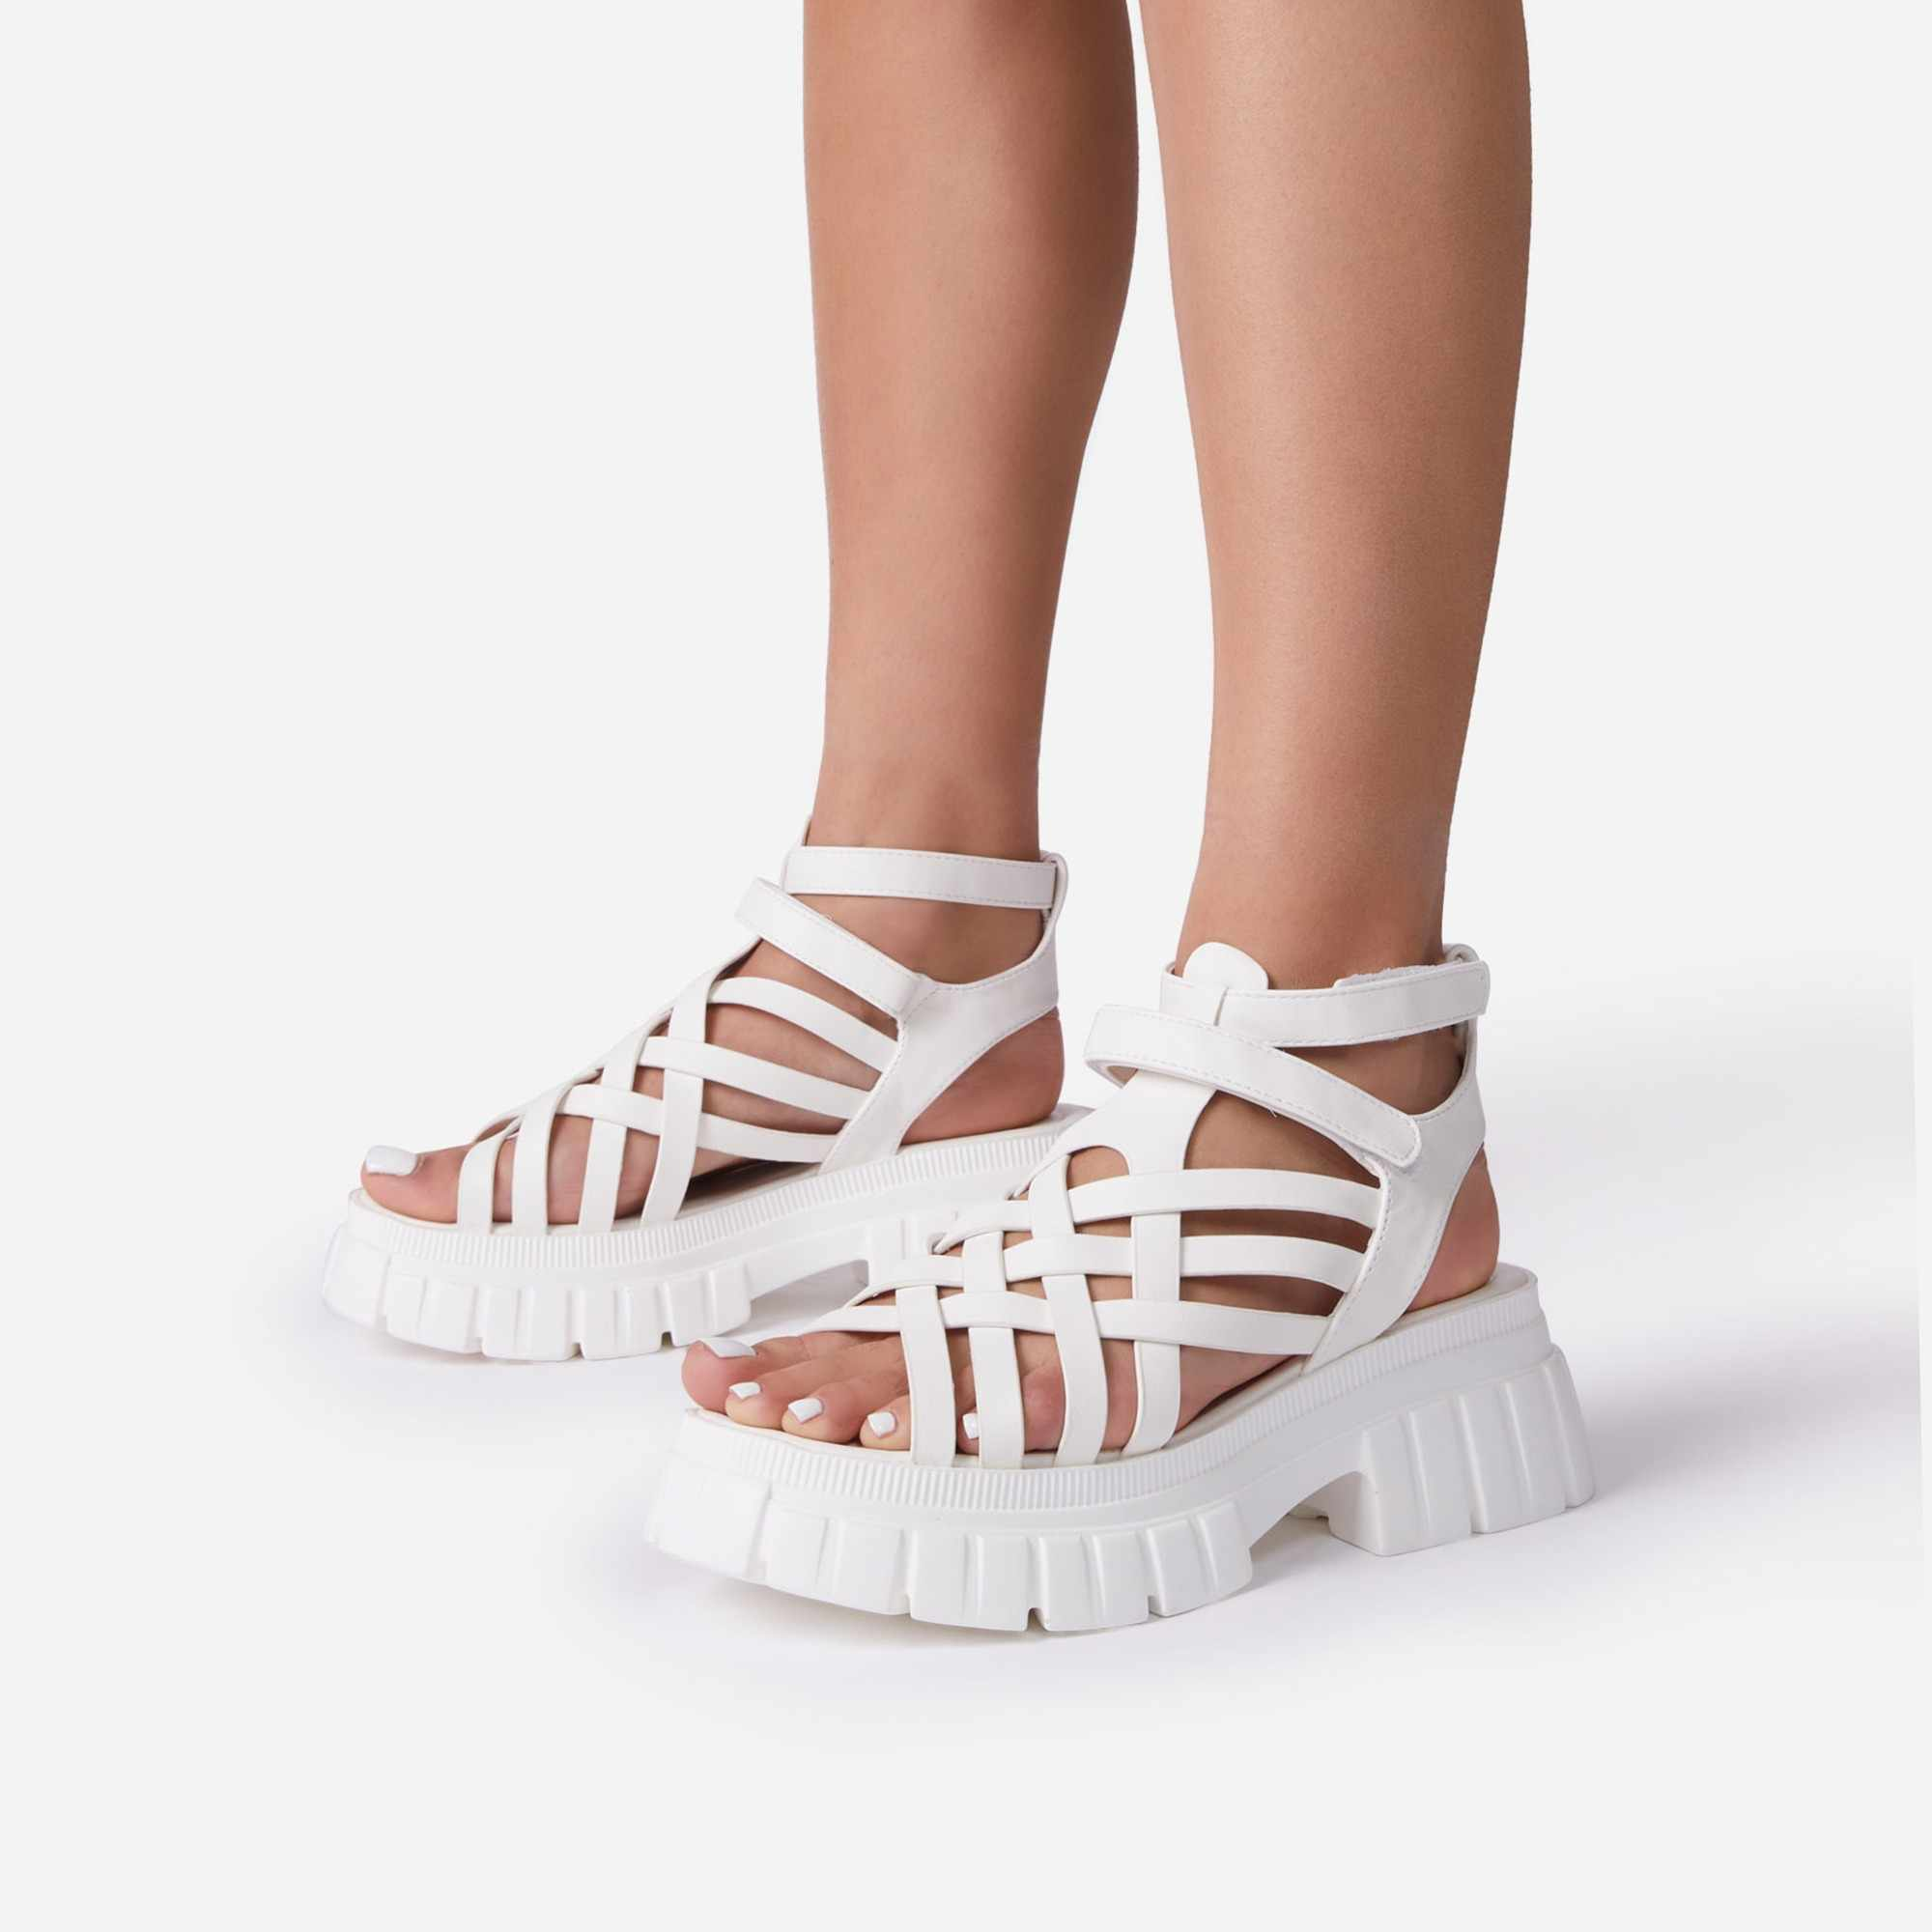 Daydreamer Chunky Sole Caged Gladiator Sandal In White Faux Leather